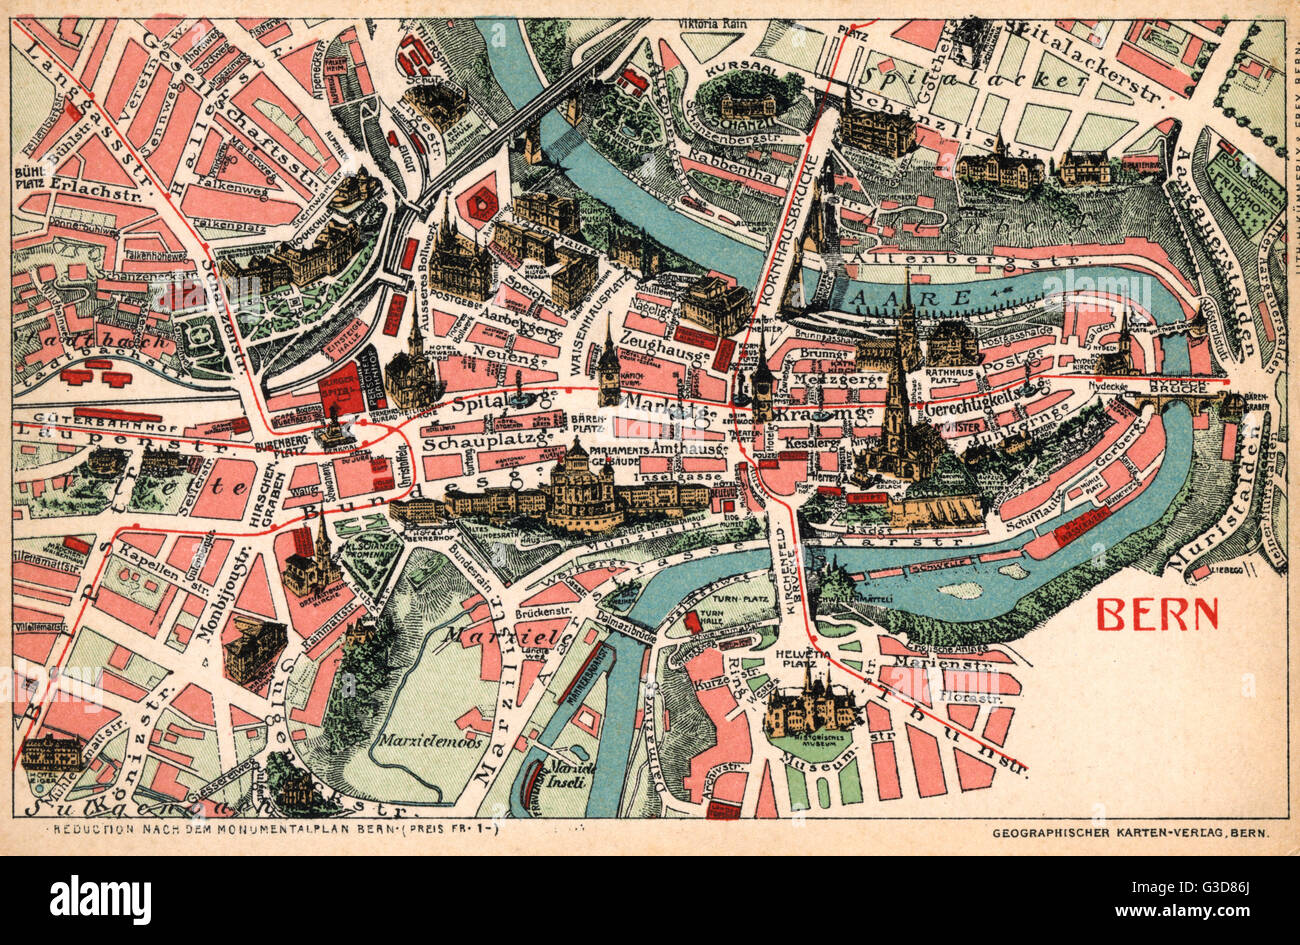 Map of Bern, Switzerland Date: 1905 Stock Photo: 105398010 - Alamy